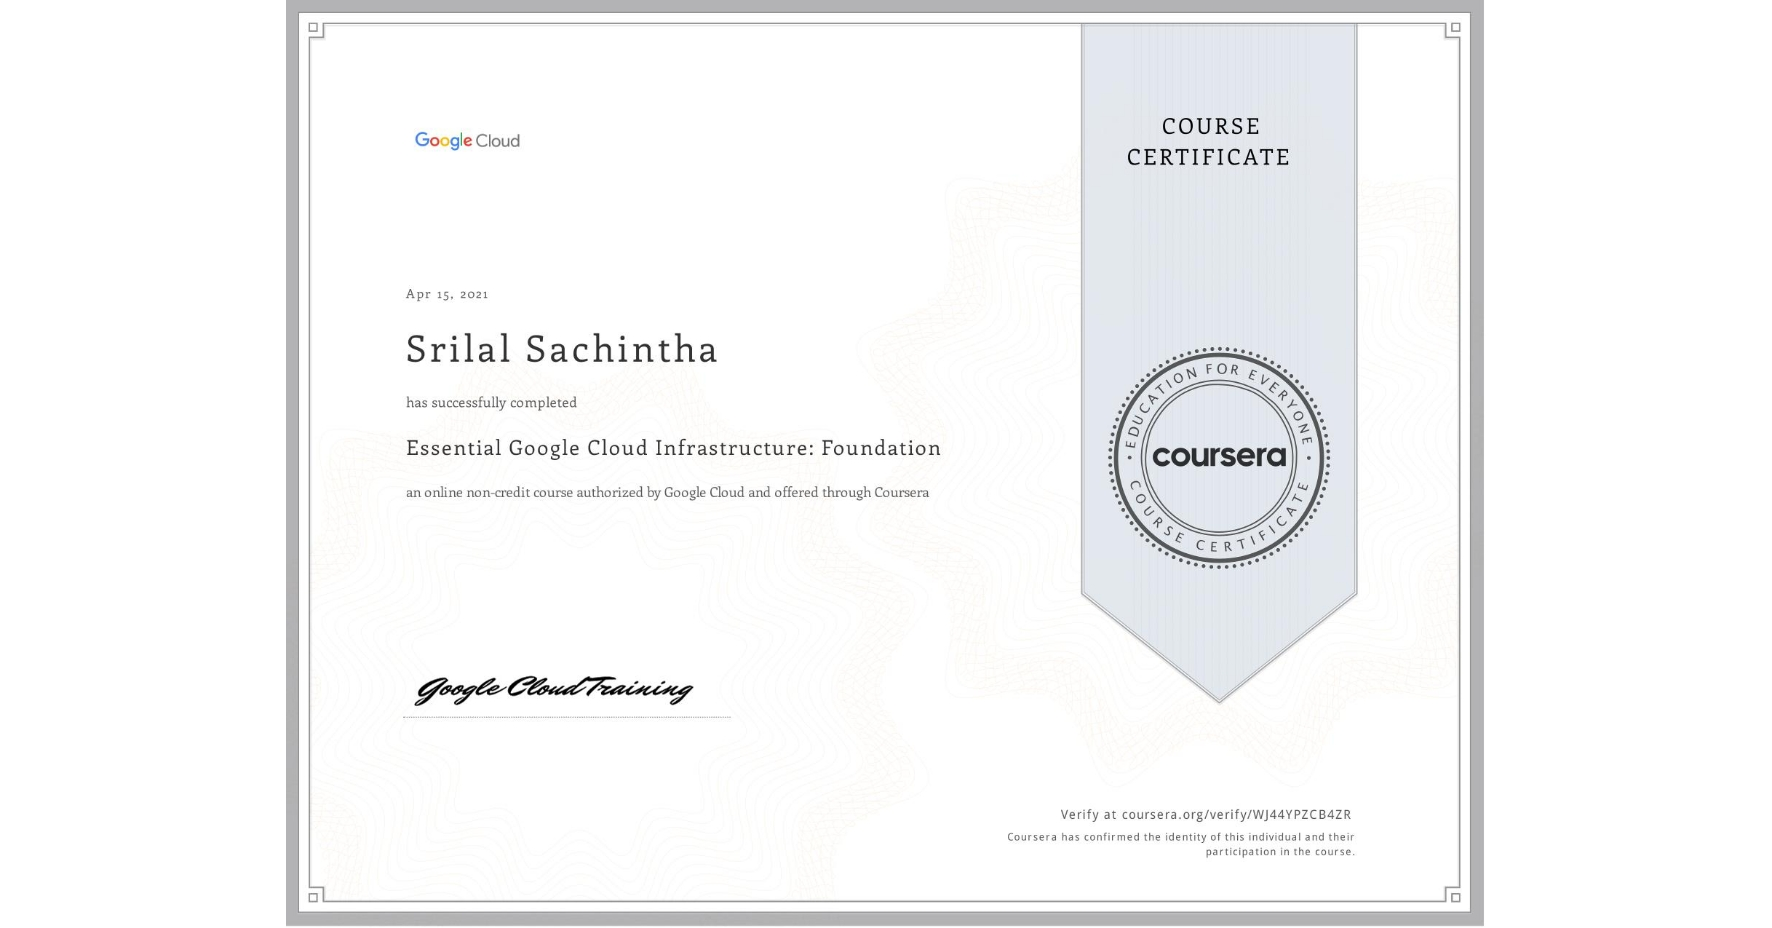 View certificate for Srilal Sachintha, Essential Google Cloud Infrastructure: Foundation, an online non-credit course authorized by Google Cloud and offered through Coursera